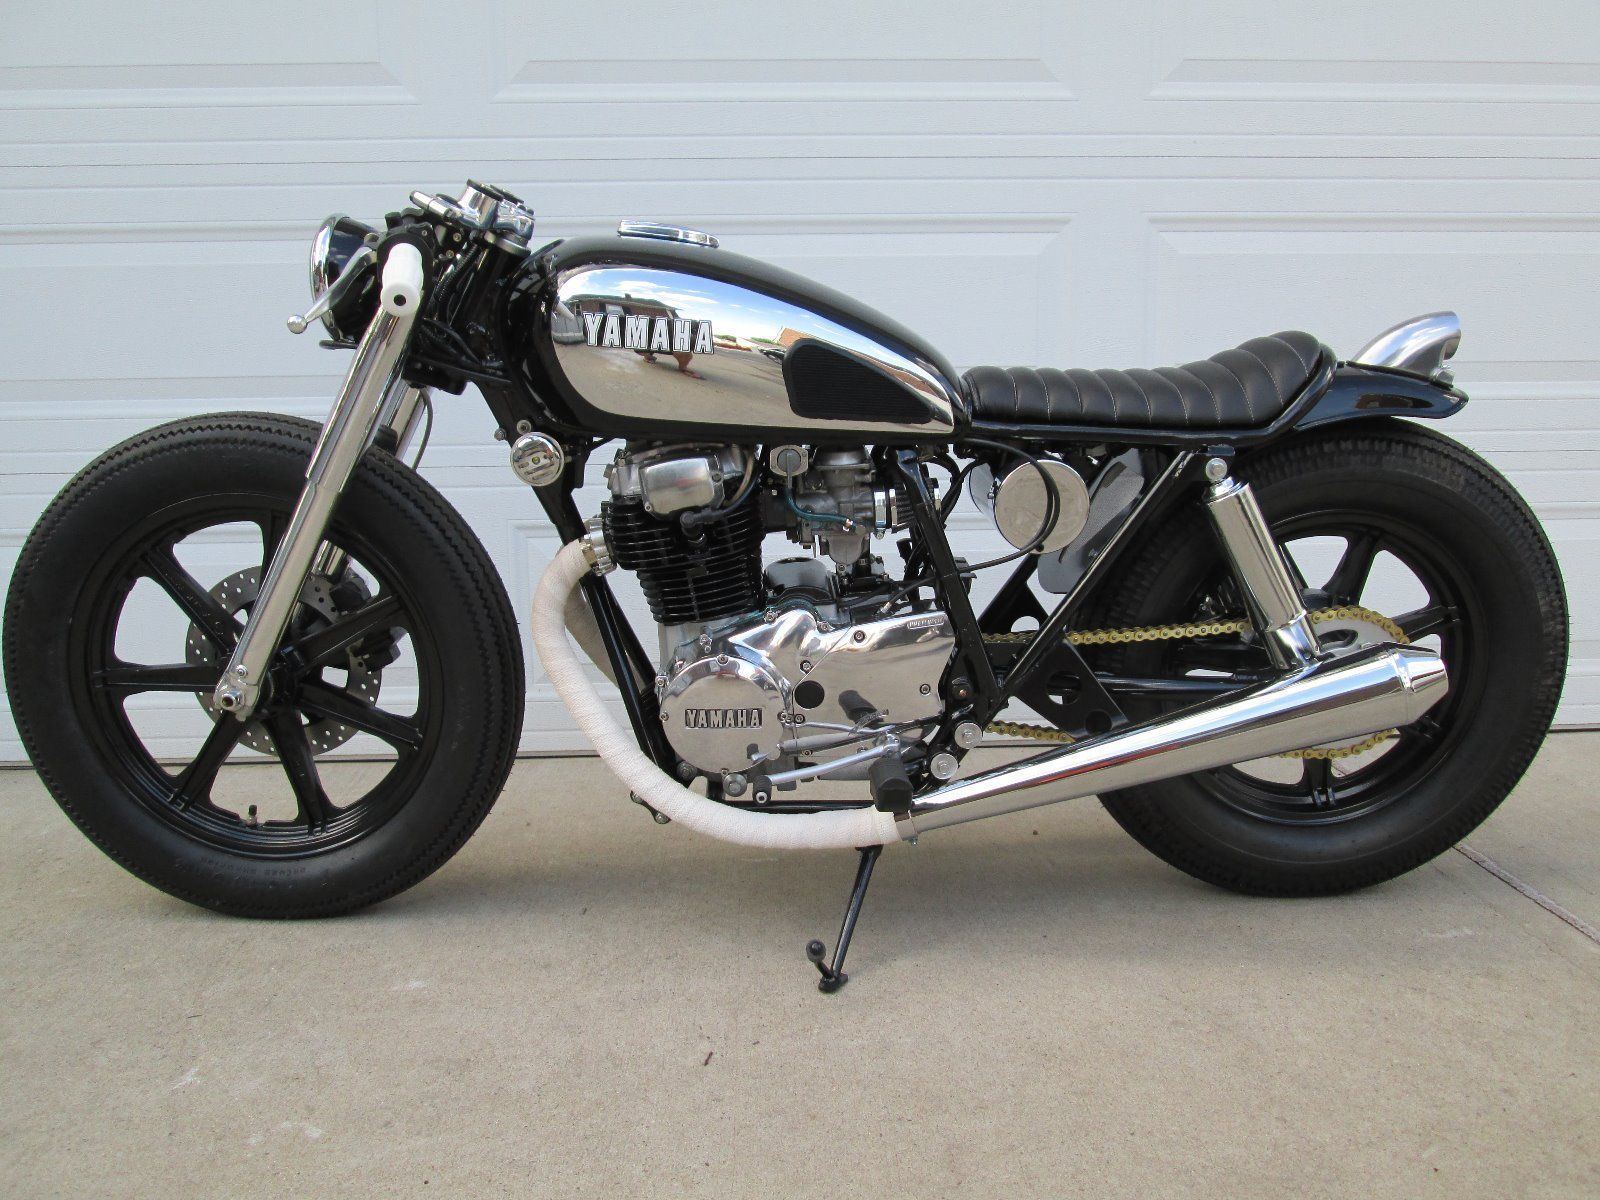 yamaha xs400 custom cafe racer motorcycles for sale custom cafe racer cafe racers for sale. Black Bedroom Furniture Sets. Home Design Ideas